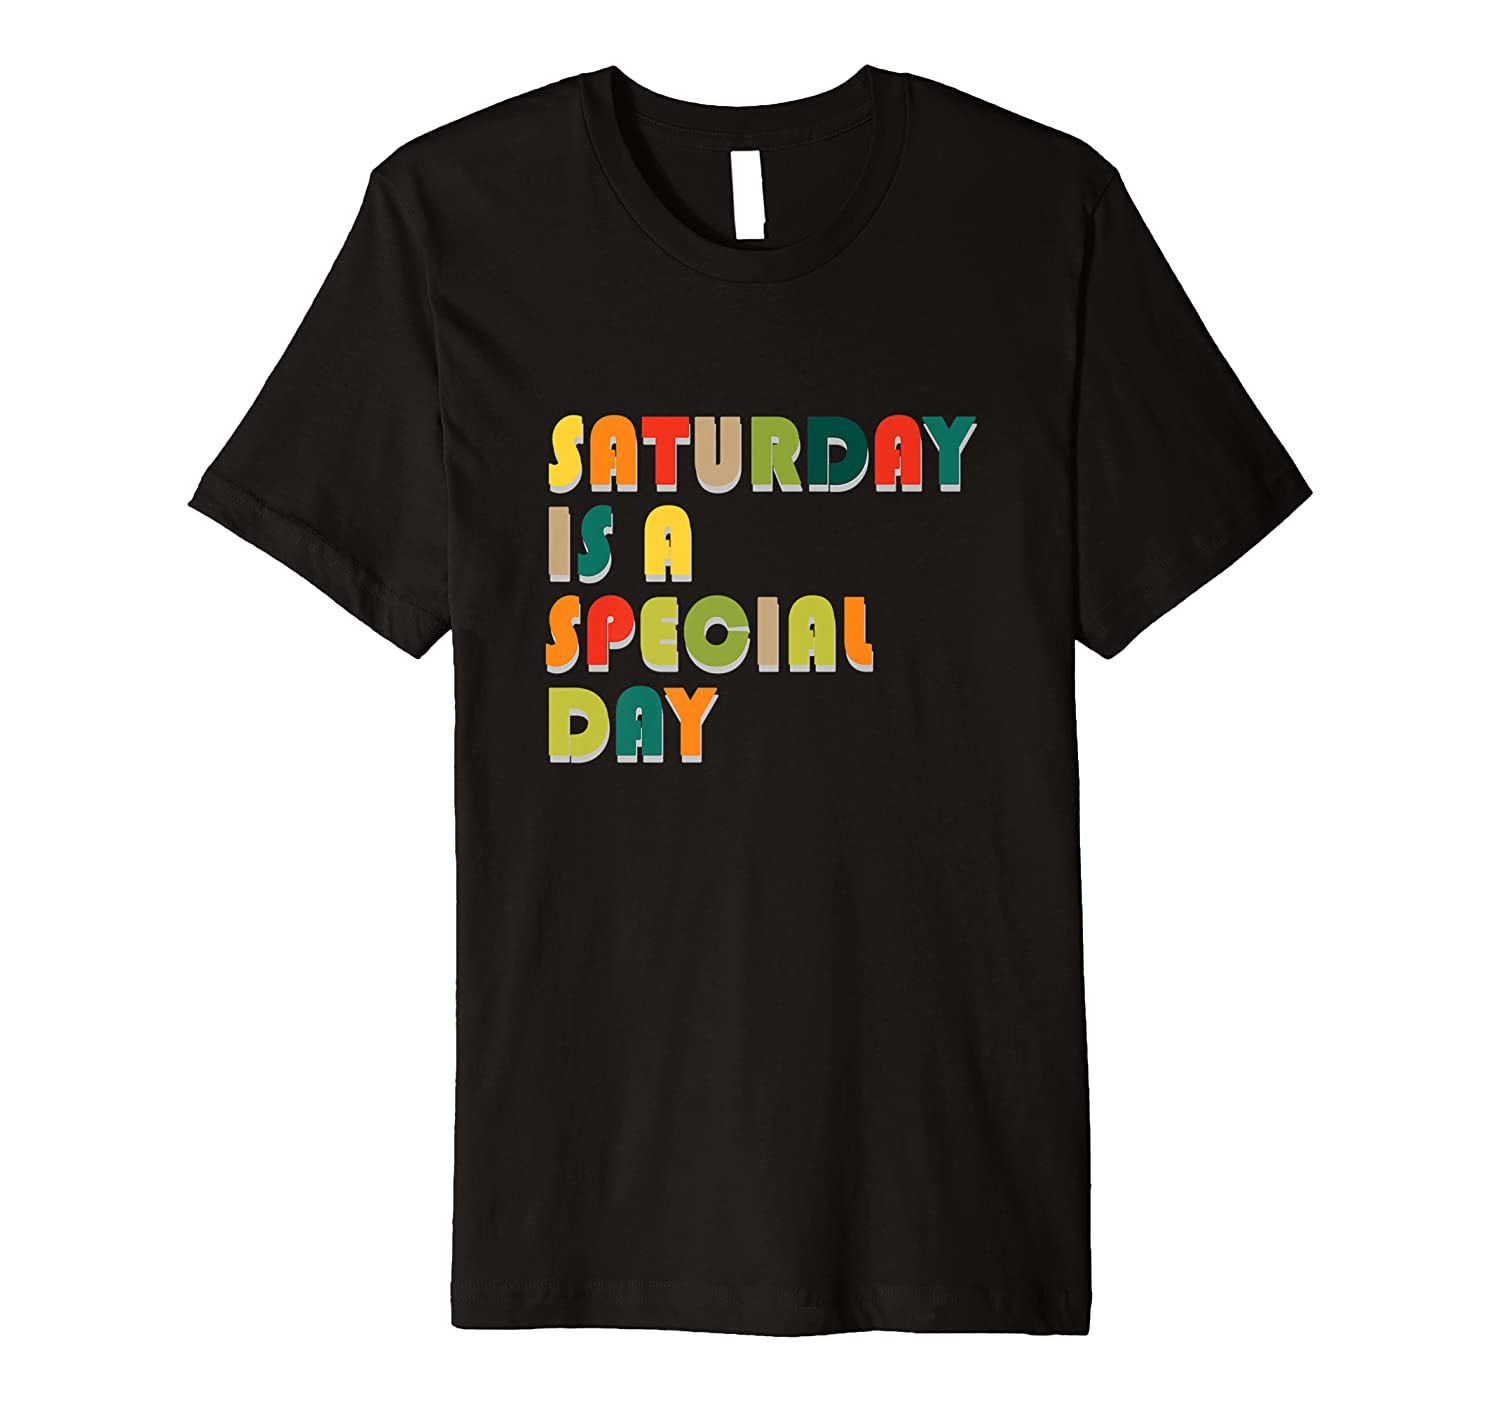 Amazon com: Saturday is a Special Day - LDS tee - More